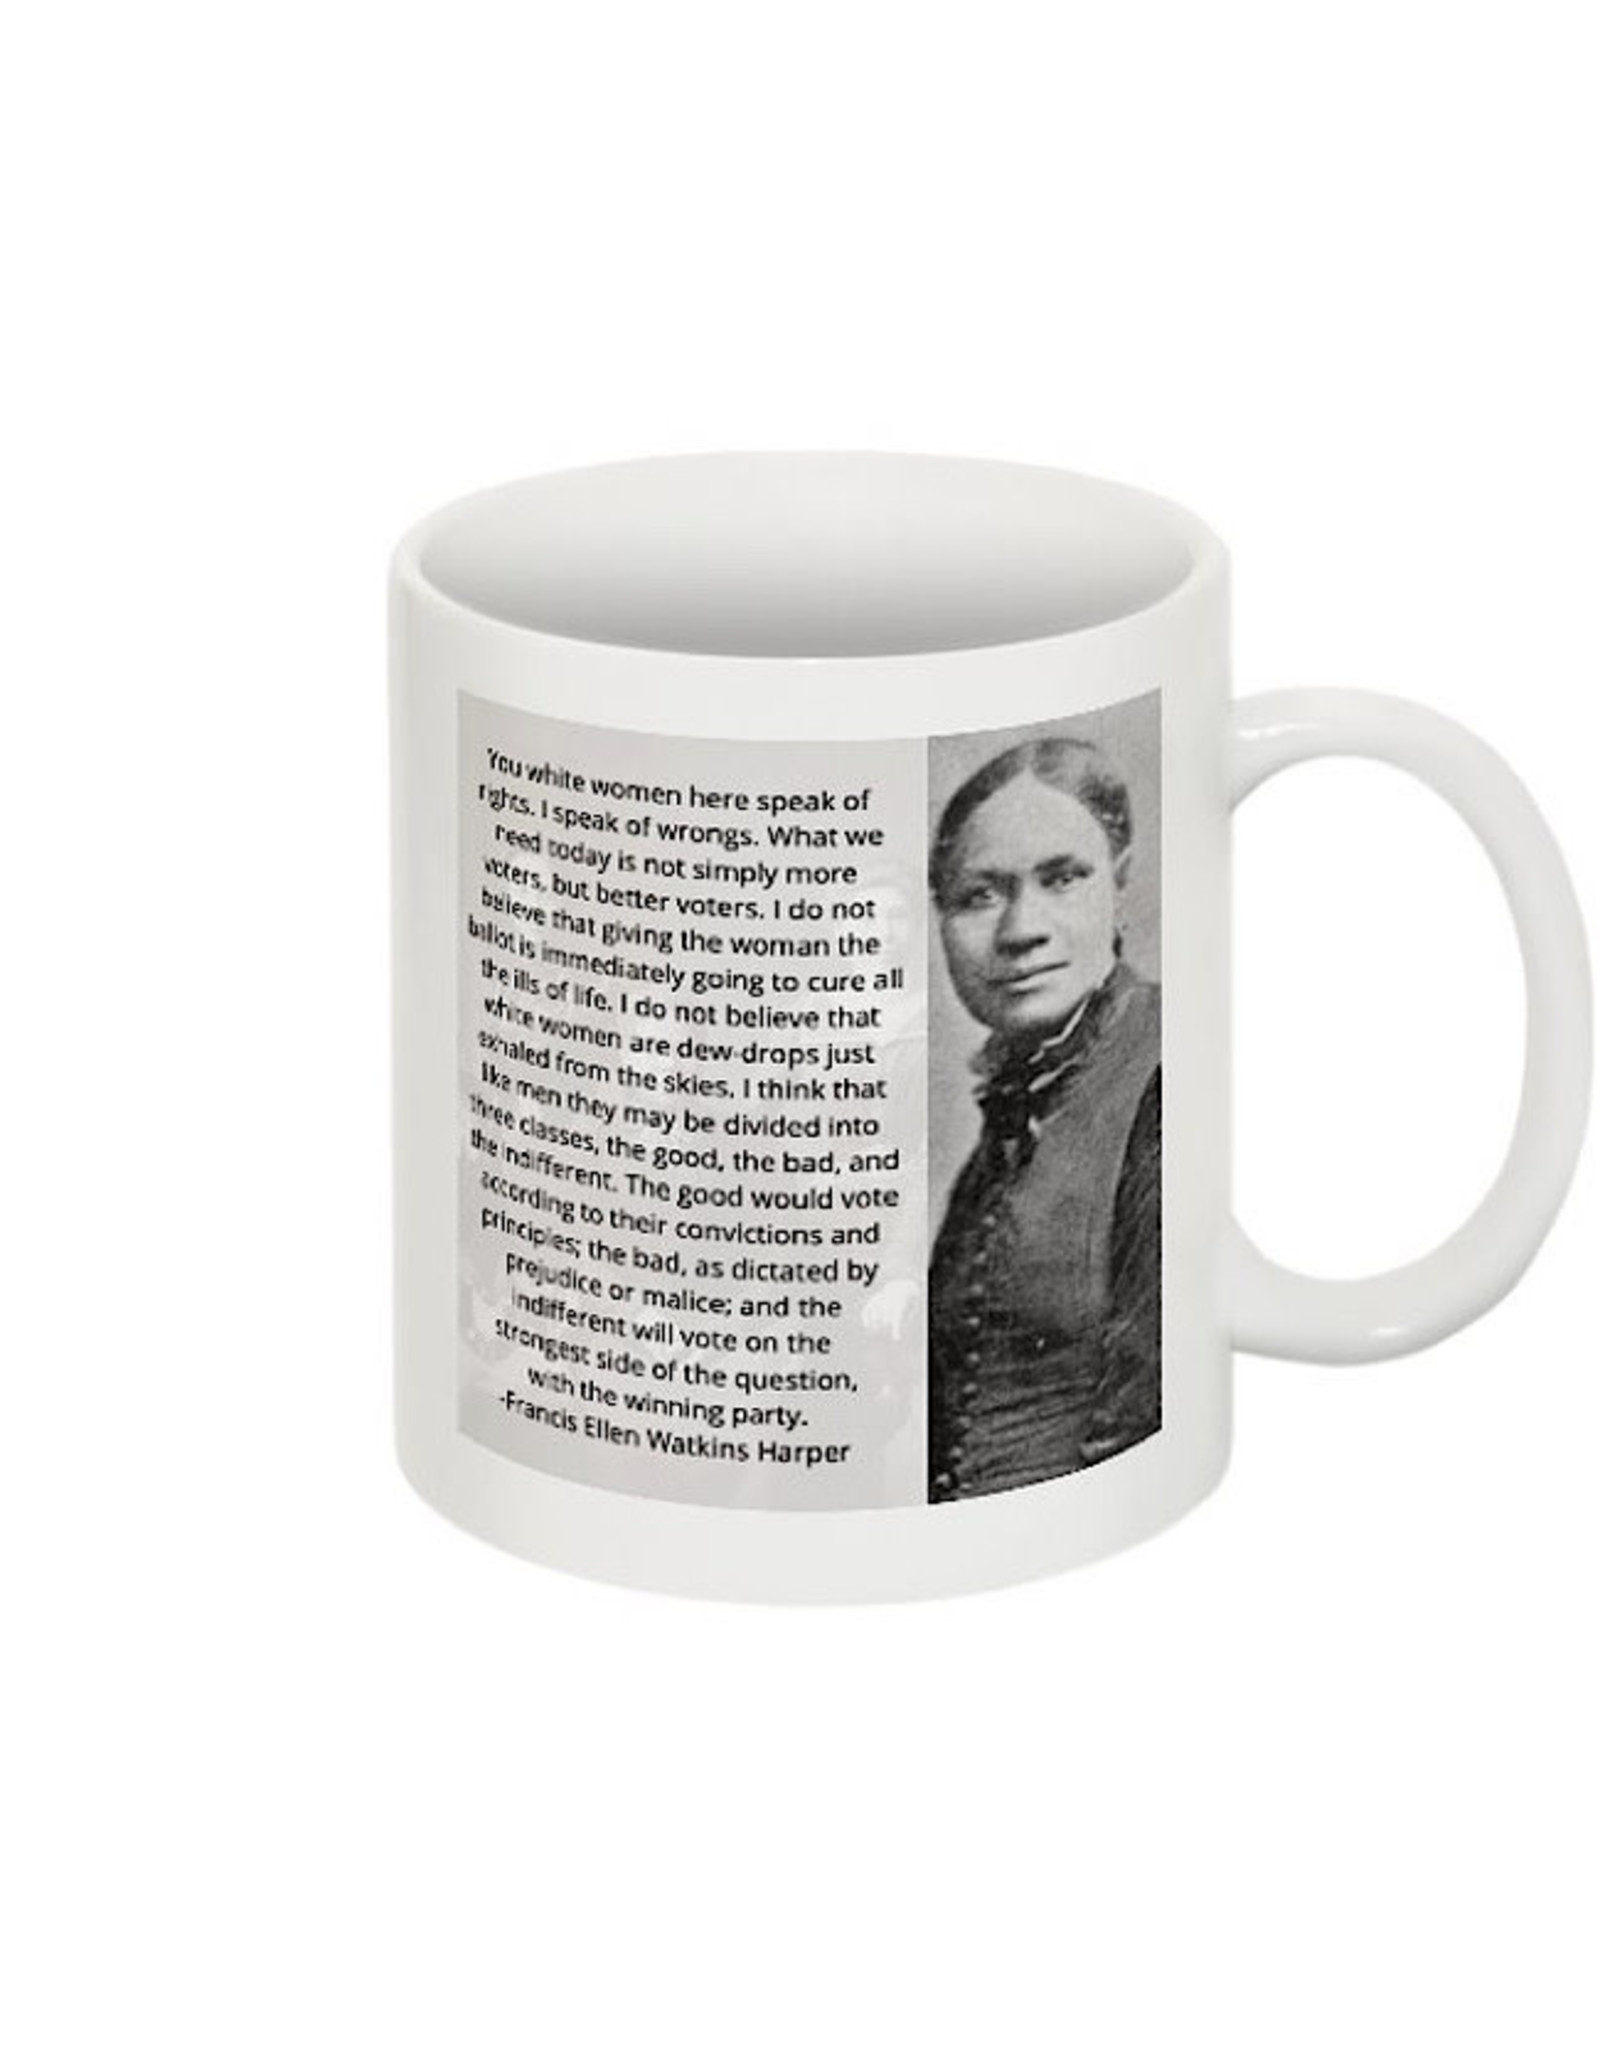 Mug - Black Suffragists Matter (Kamala Harris)